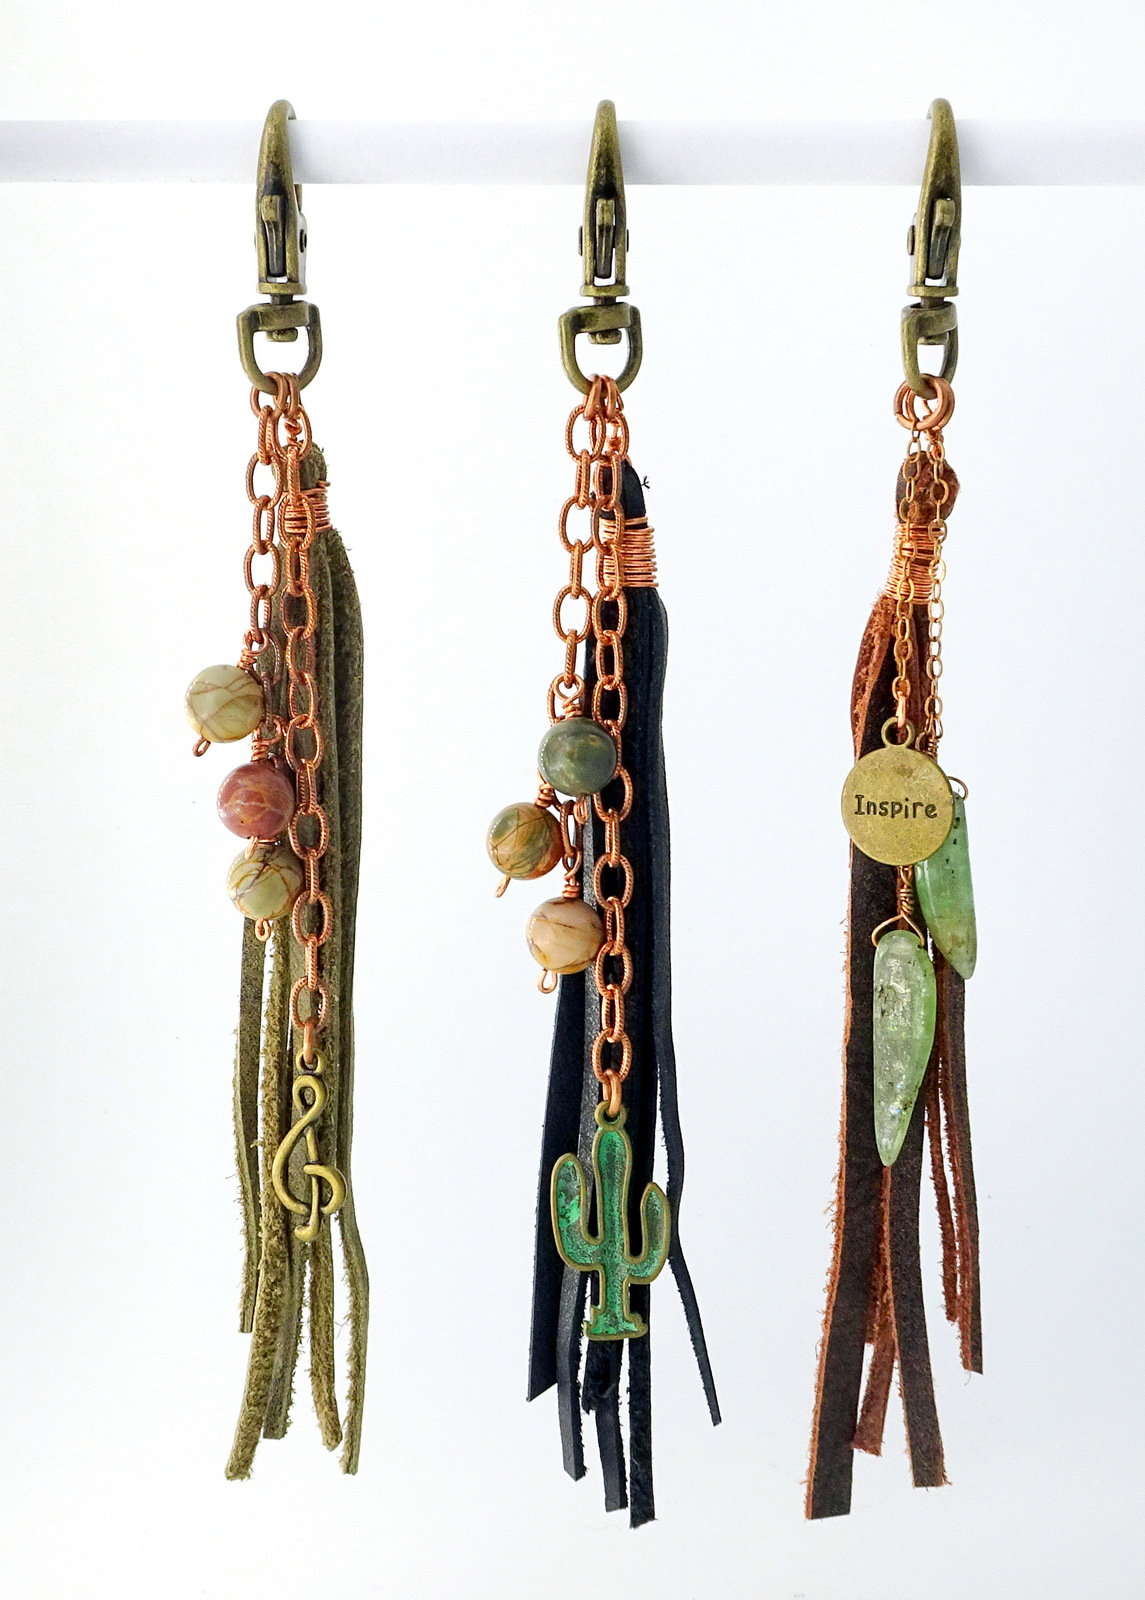 1-Handcrafted Leather Tassels, Nancy LaPlace, LaPlace Leather-002.JPG